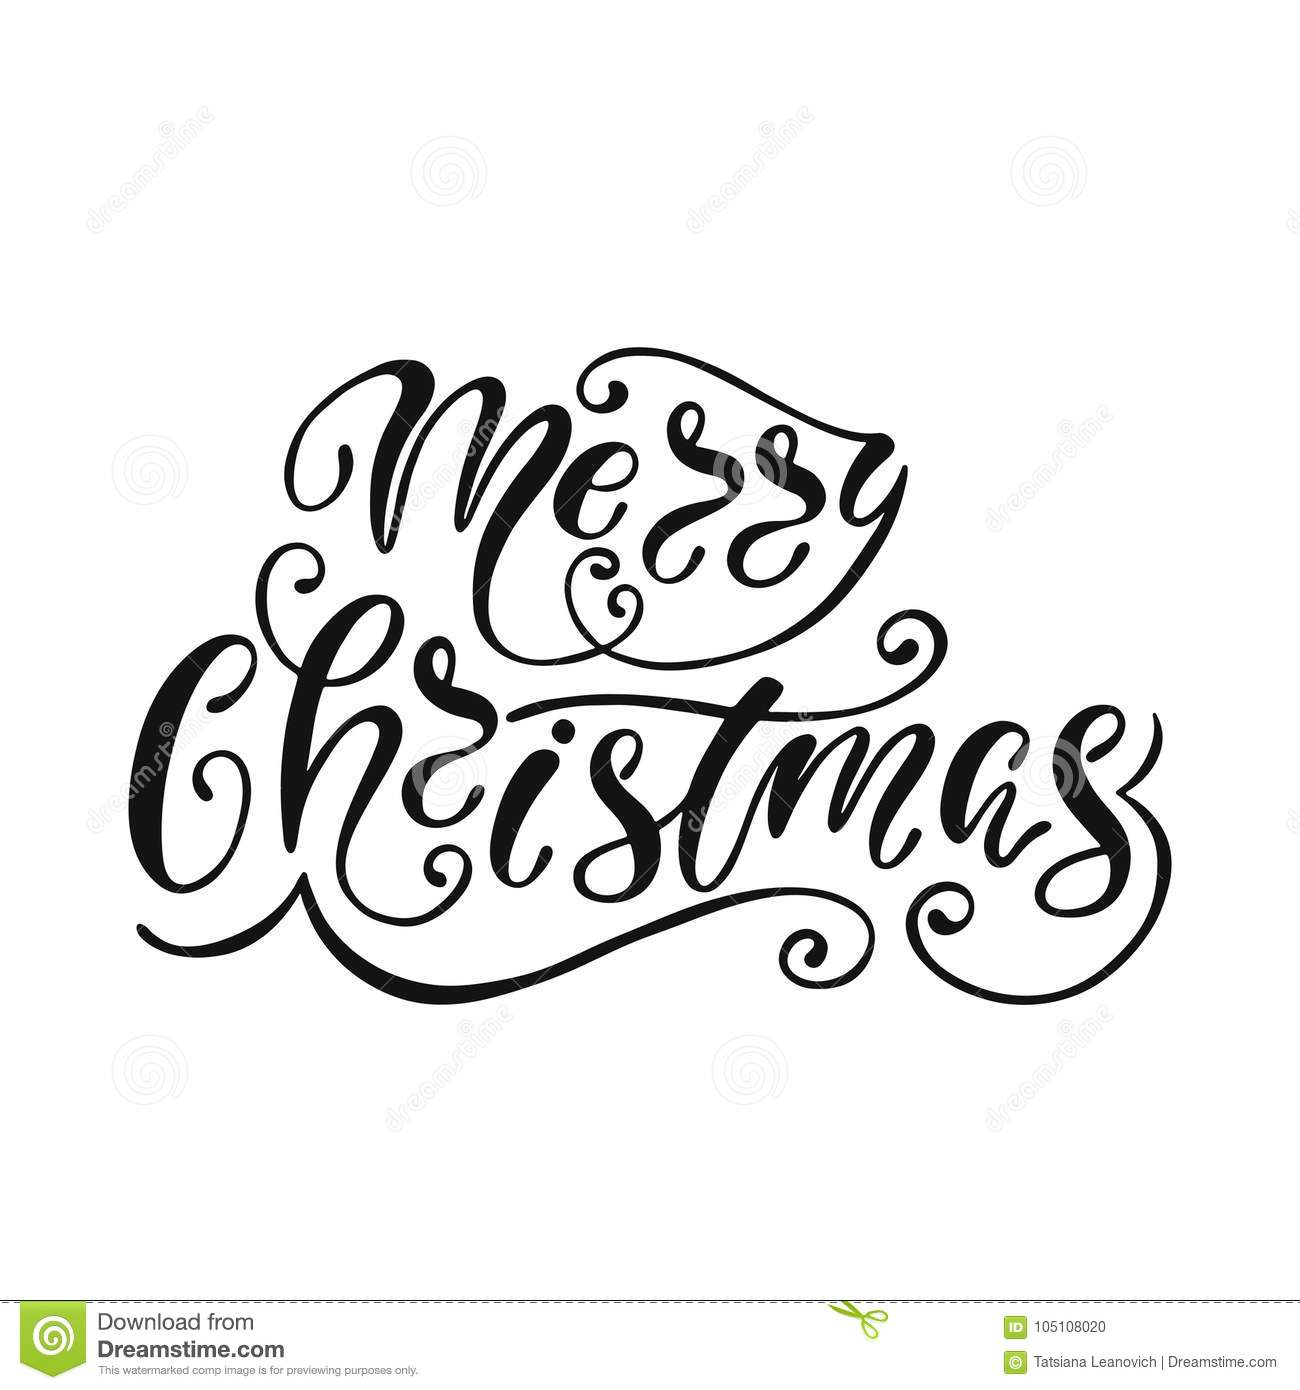 Merry Christmas Images Black And White.Merry Christmas Hand Drawn Calligraphy Text Holiday